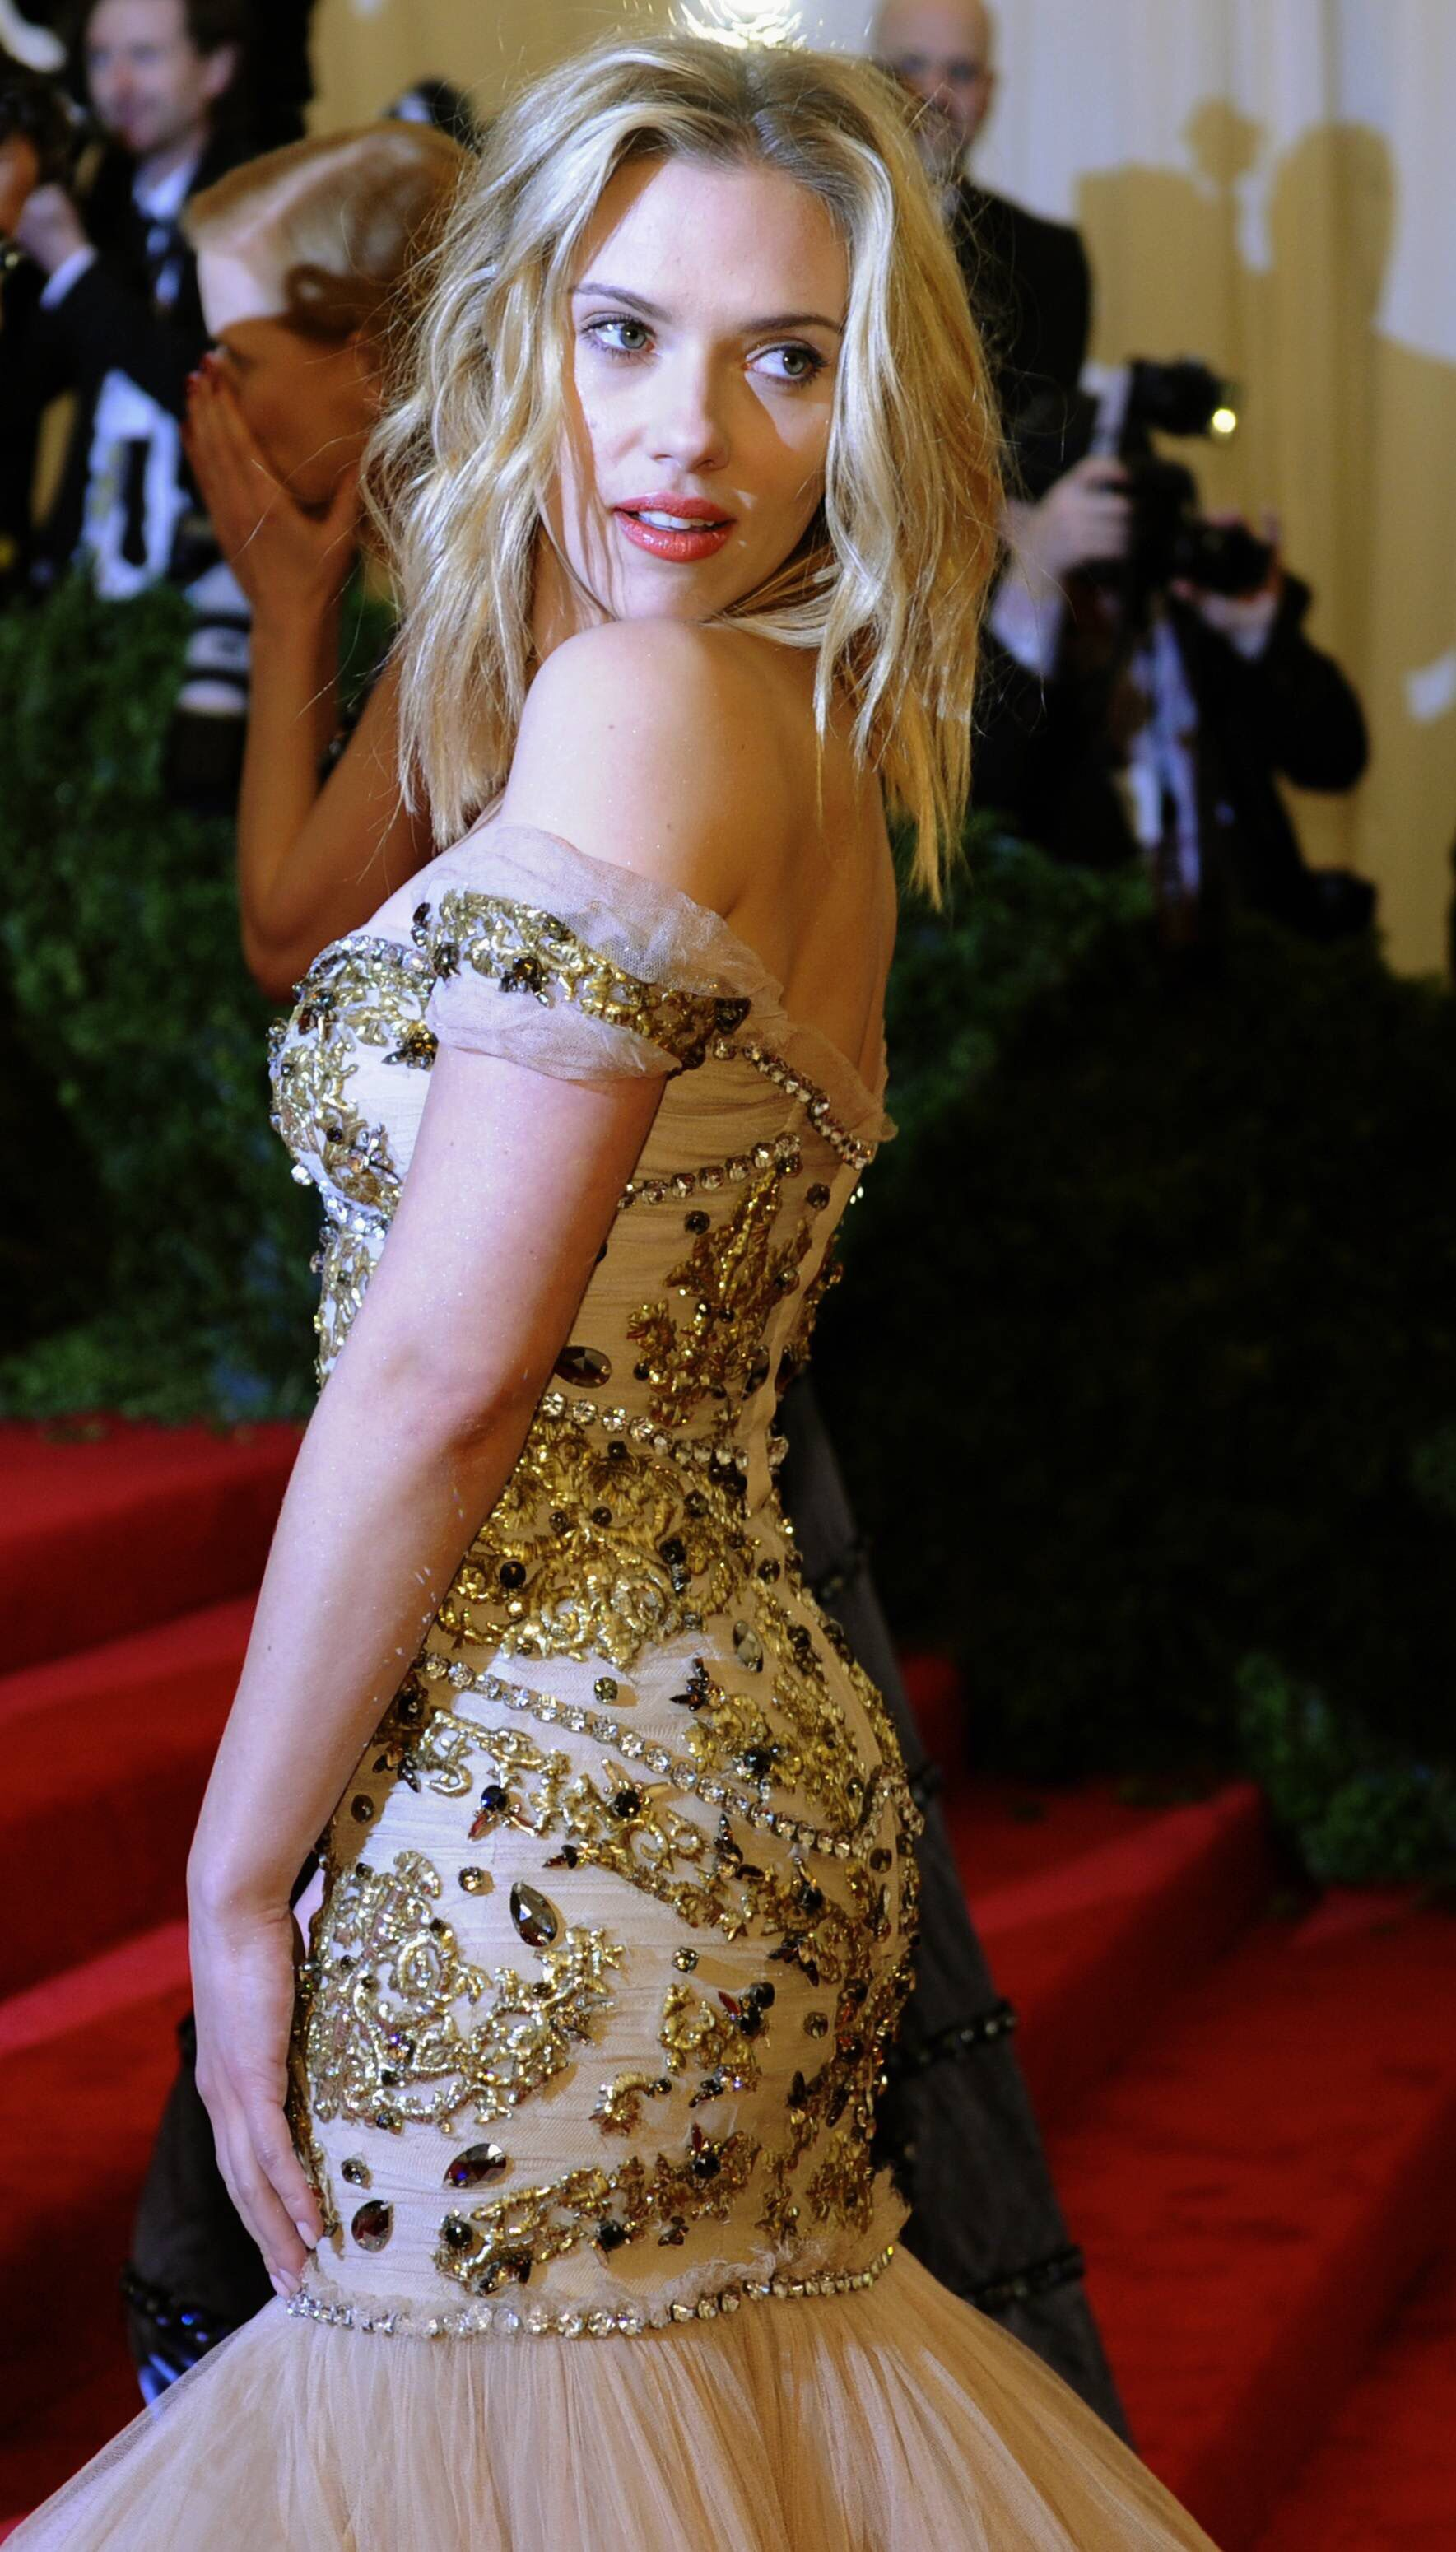 Sexually Transmitted Diseases Std Awareness Scarlet Johansson Scarlett Johansson Scarlett Johanson